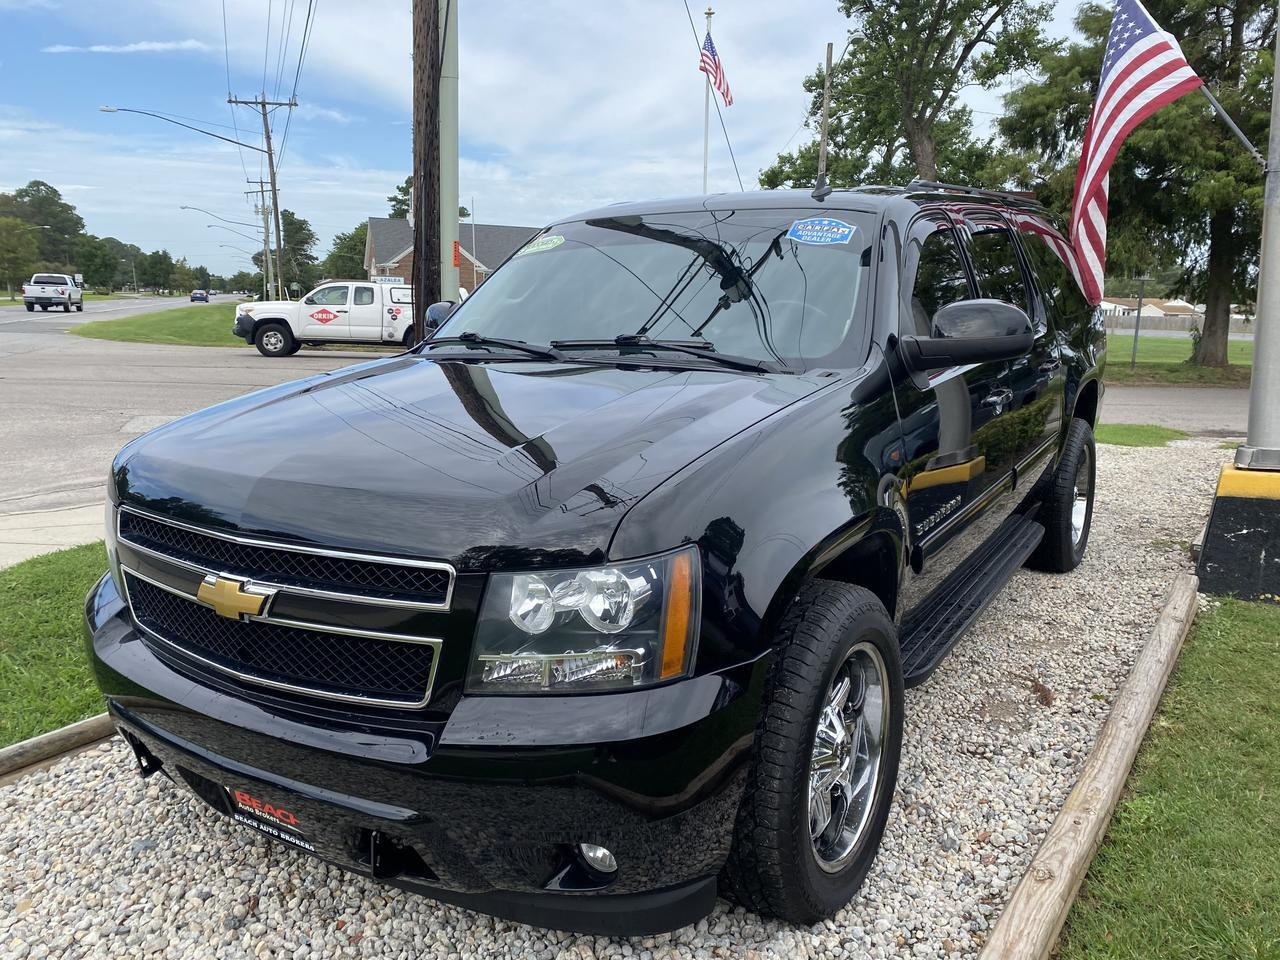 2013 CHEVROLET SUBURBAN LT 4X4, WARRANTY, LEATHER, DVD PLAYER, 3RD ROW, HEATED SEATS, CLEAN CARFAX! Norfolk VA